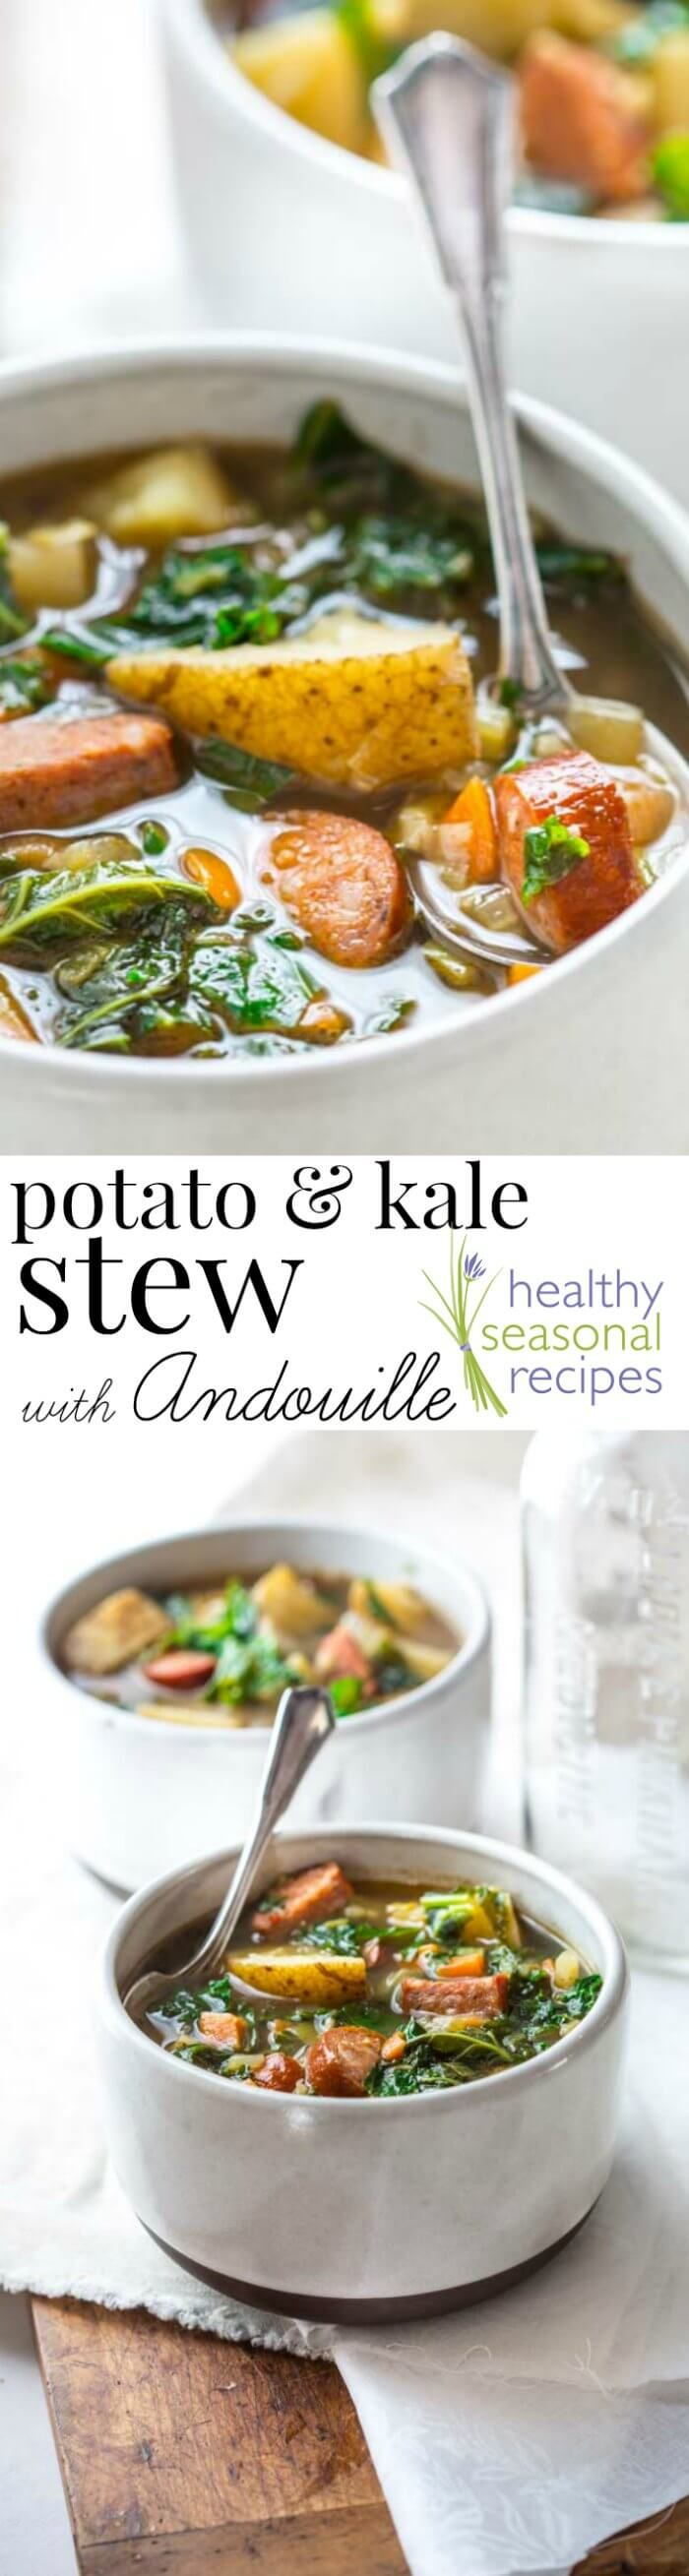 If you're looking for a yummy but healthy Potato and Sausage Soup then, you'll love this Potato and Kale Soup with Andouille Sausage! It's naturally gluten-free, ready in 45 minutes and only 260 calories per serving! Healthy Seasonal Recipes by Katie Webster